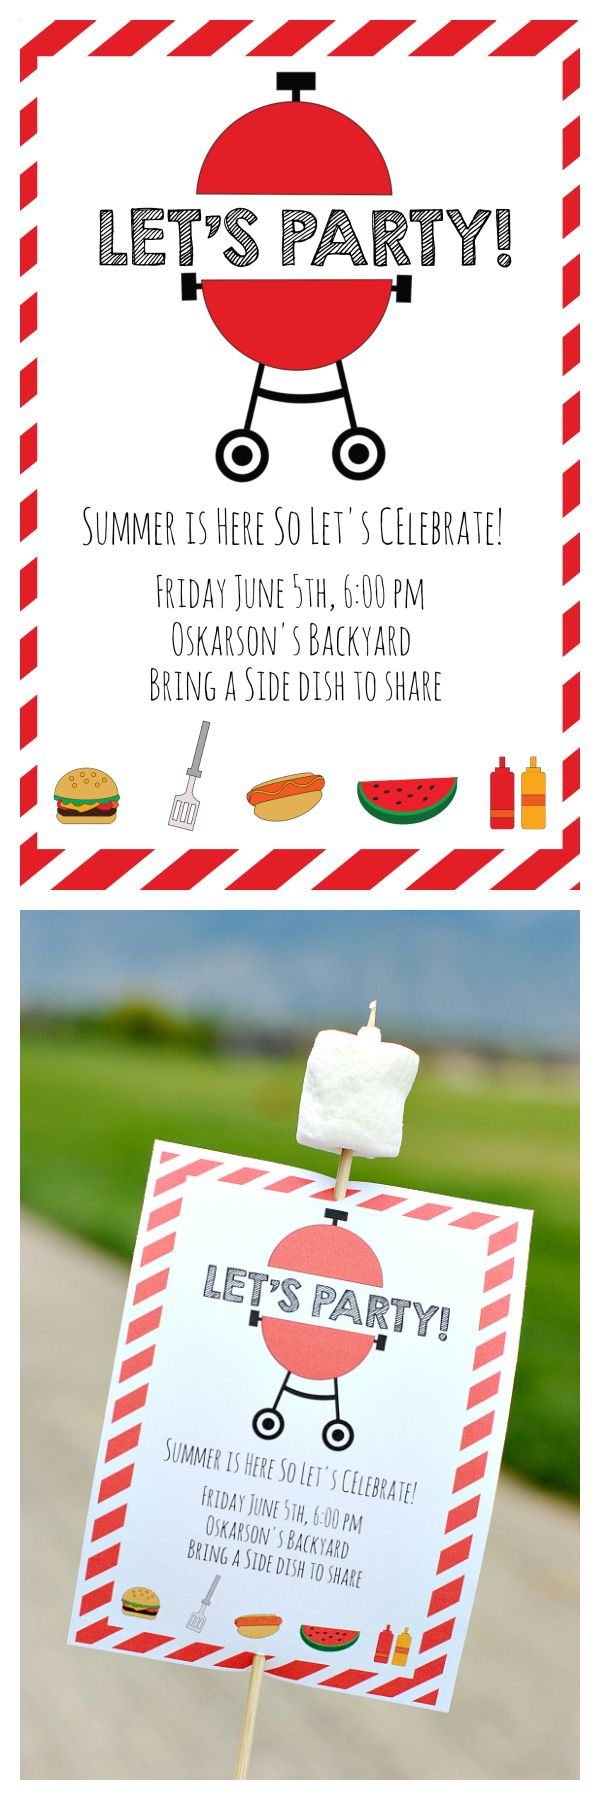 Free Printable Summer BBQ Invitations and a Cute Idea to Present Them!